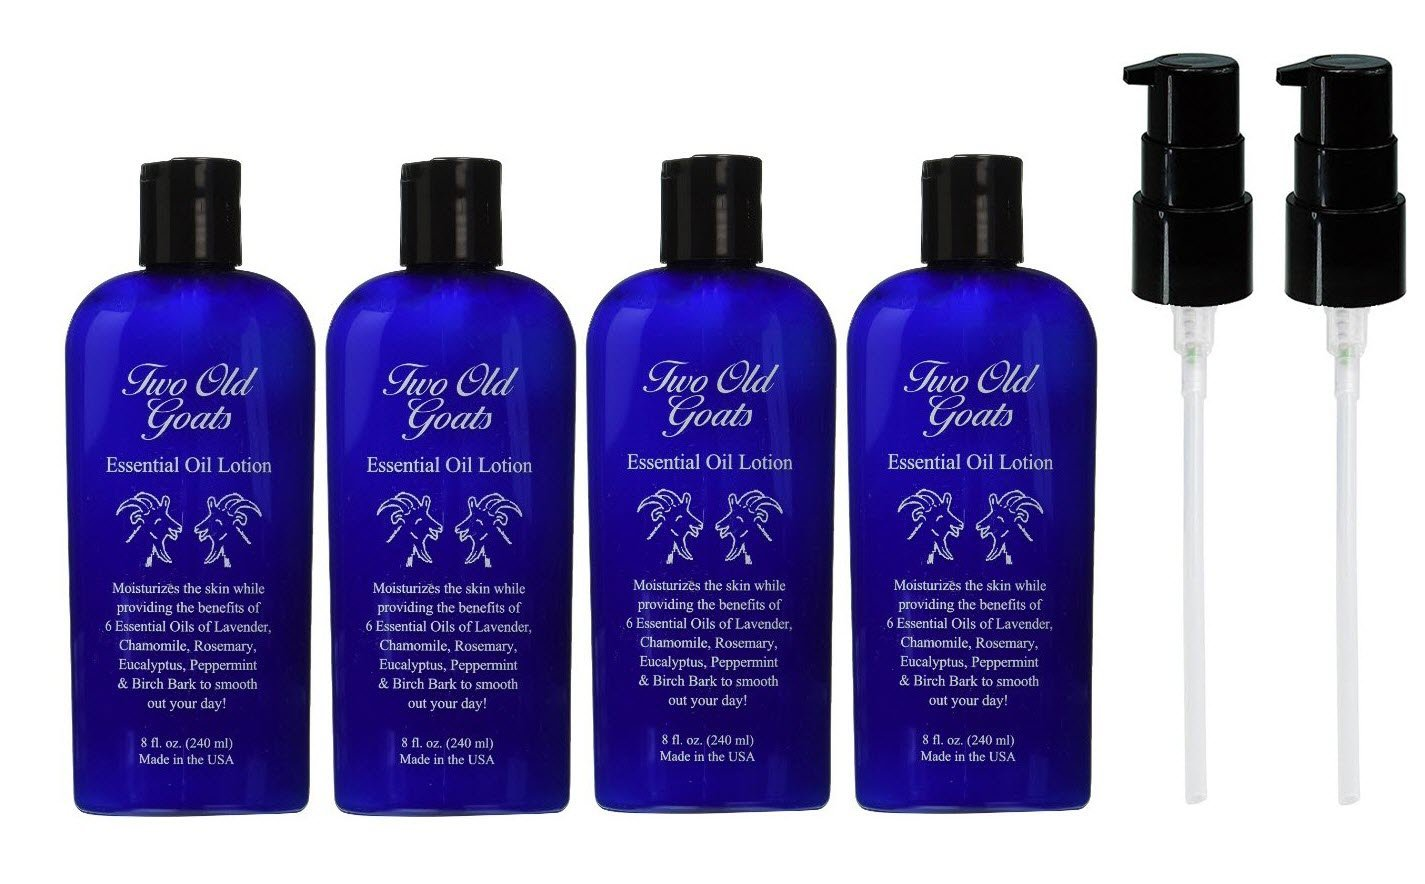 Two Old Goats Essential Oil Lotion, 8 Fluid Ounce, Pack of 4 by Two Old Goats